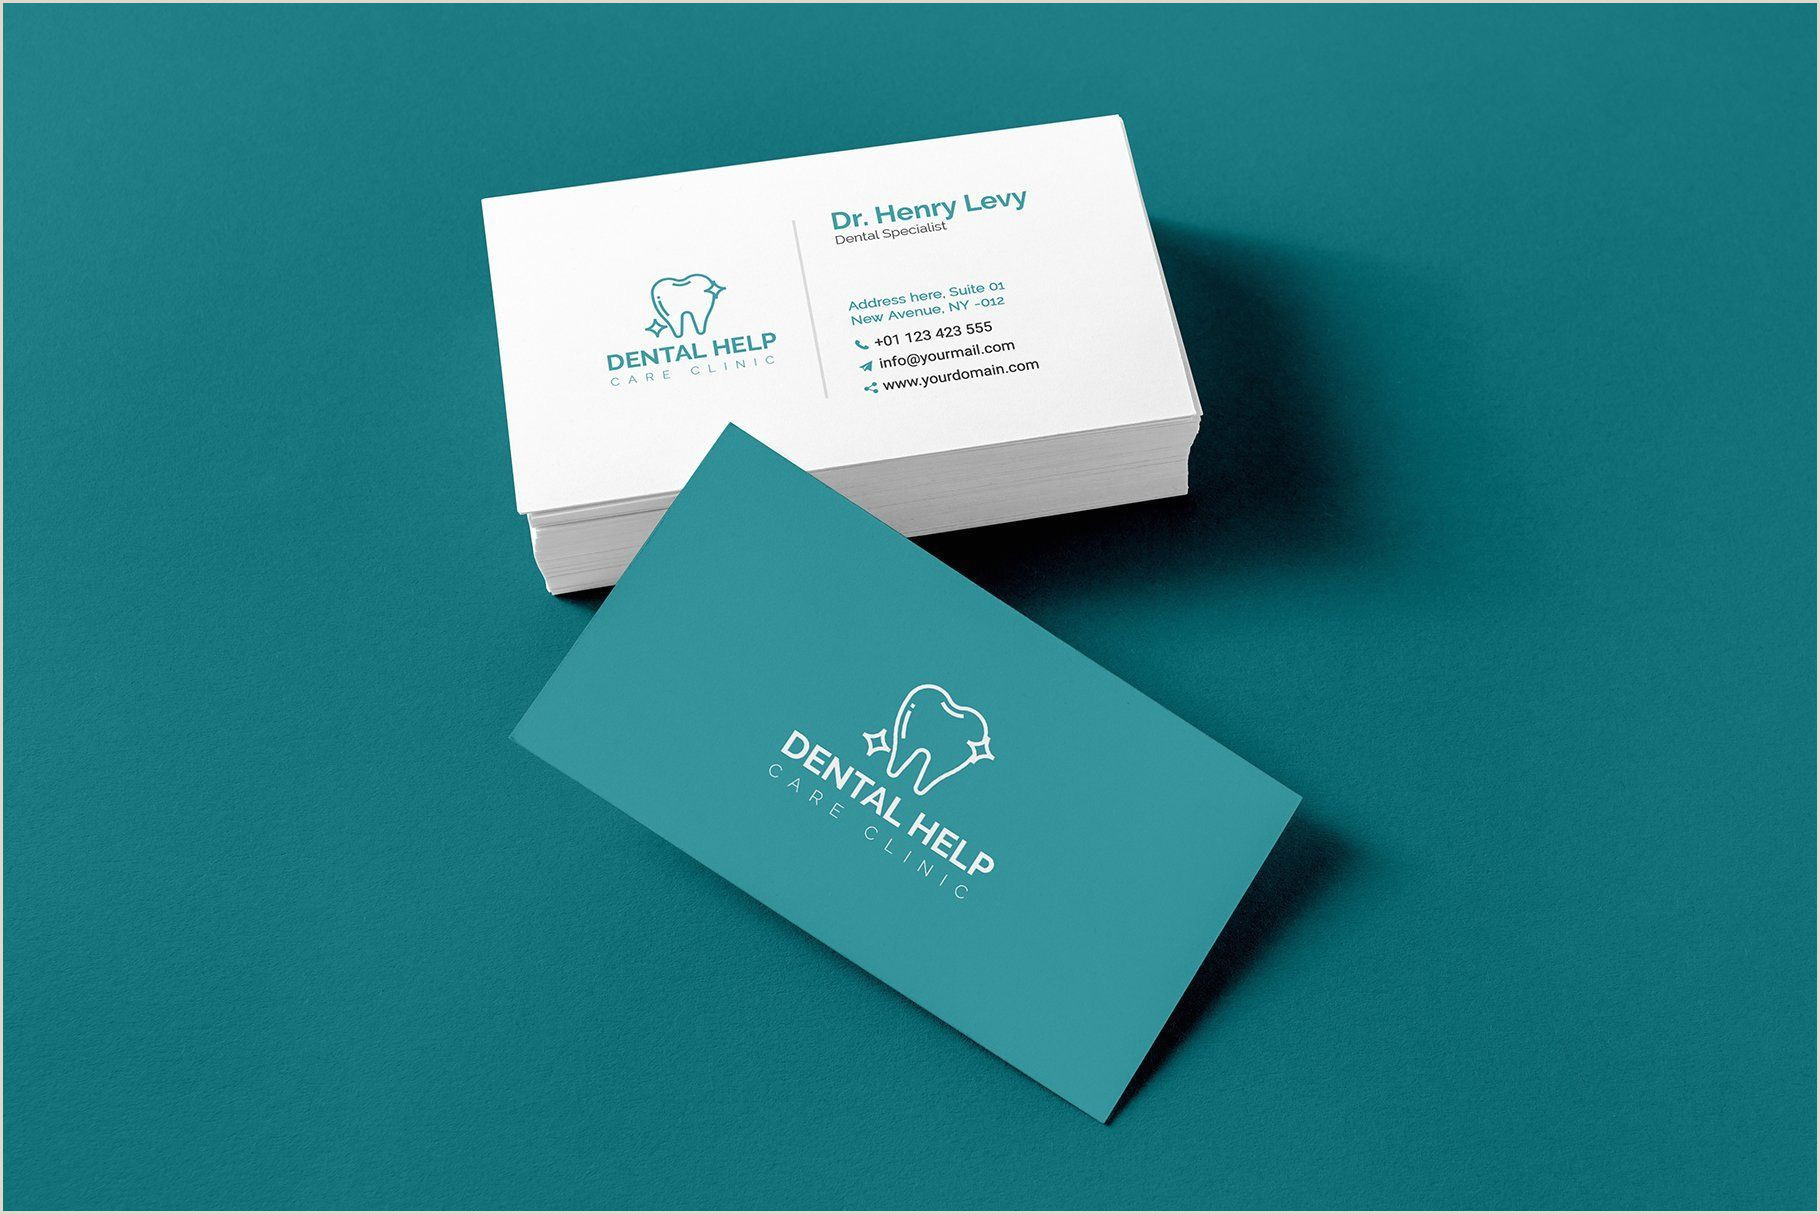 What To Put On Personal Business Card Dentist Business Card Templates In 2020